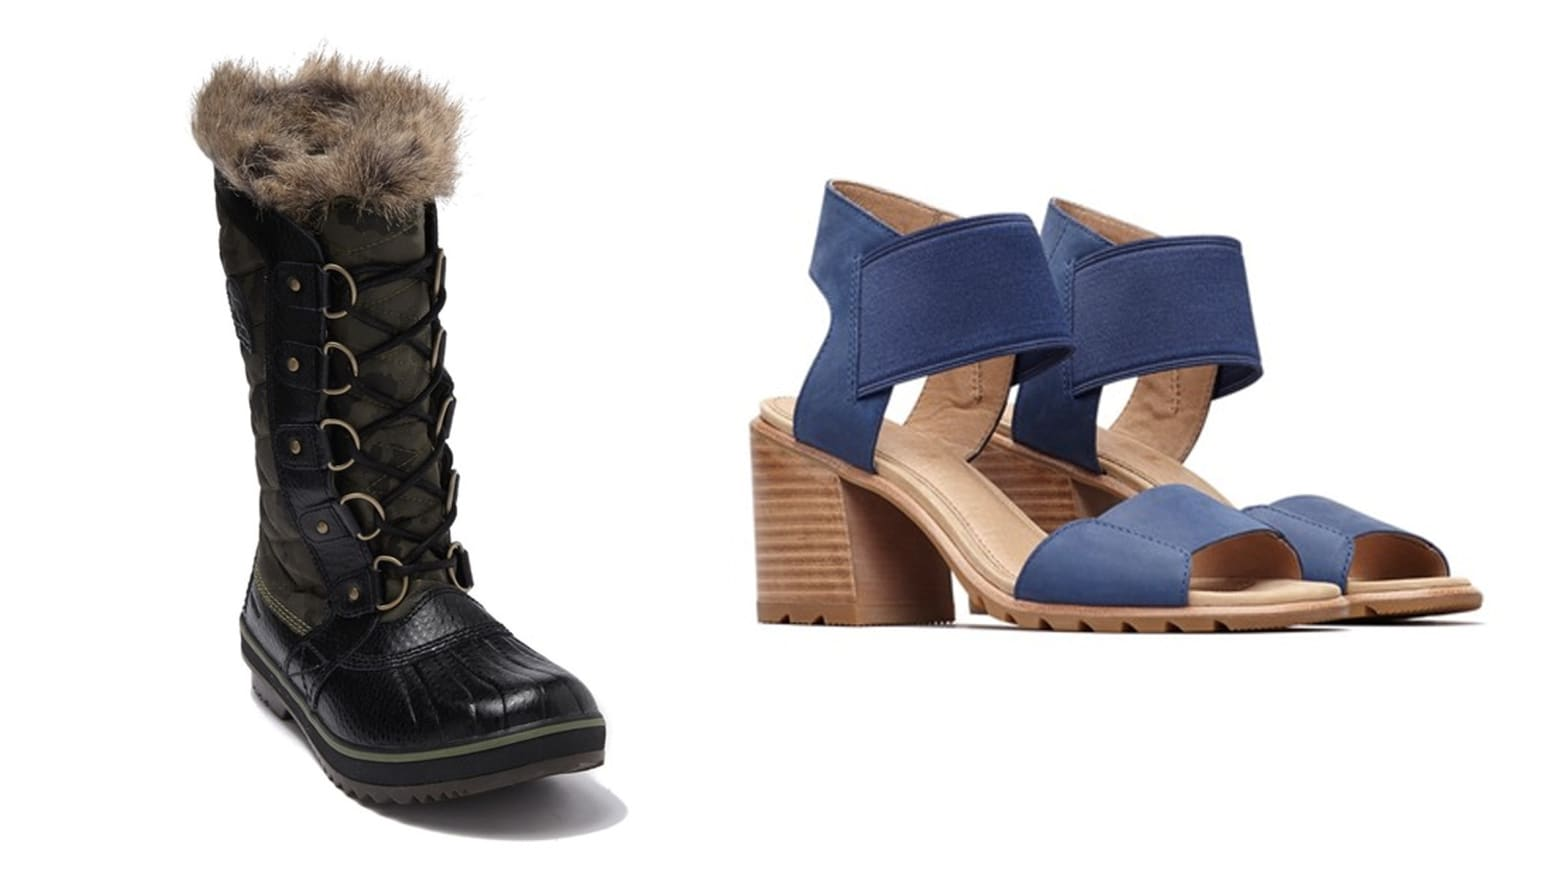 Sorel Boots and Sandals Are Up to 50% Off at Nordstrom Rack